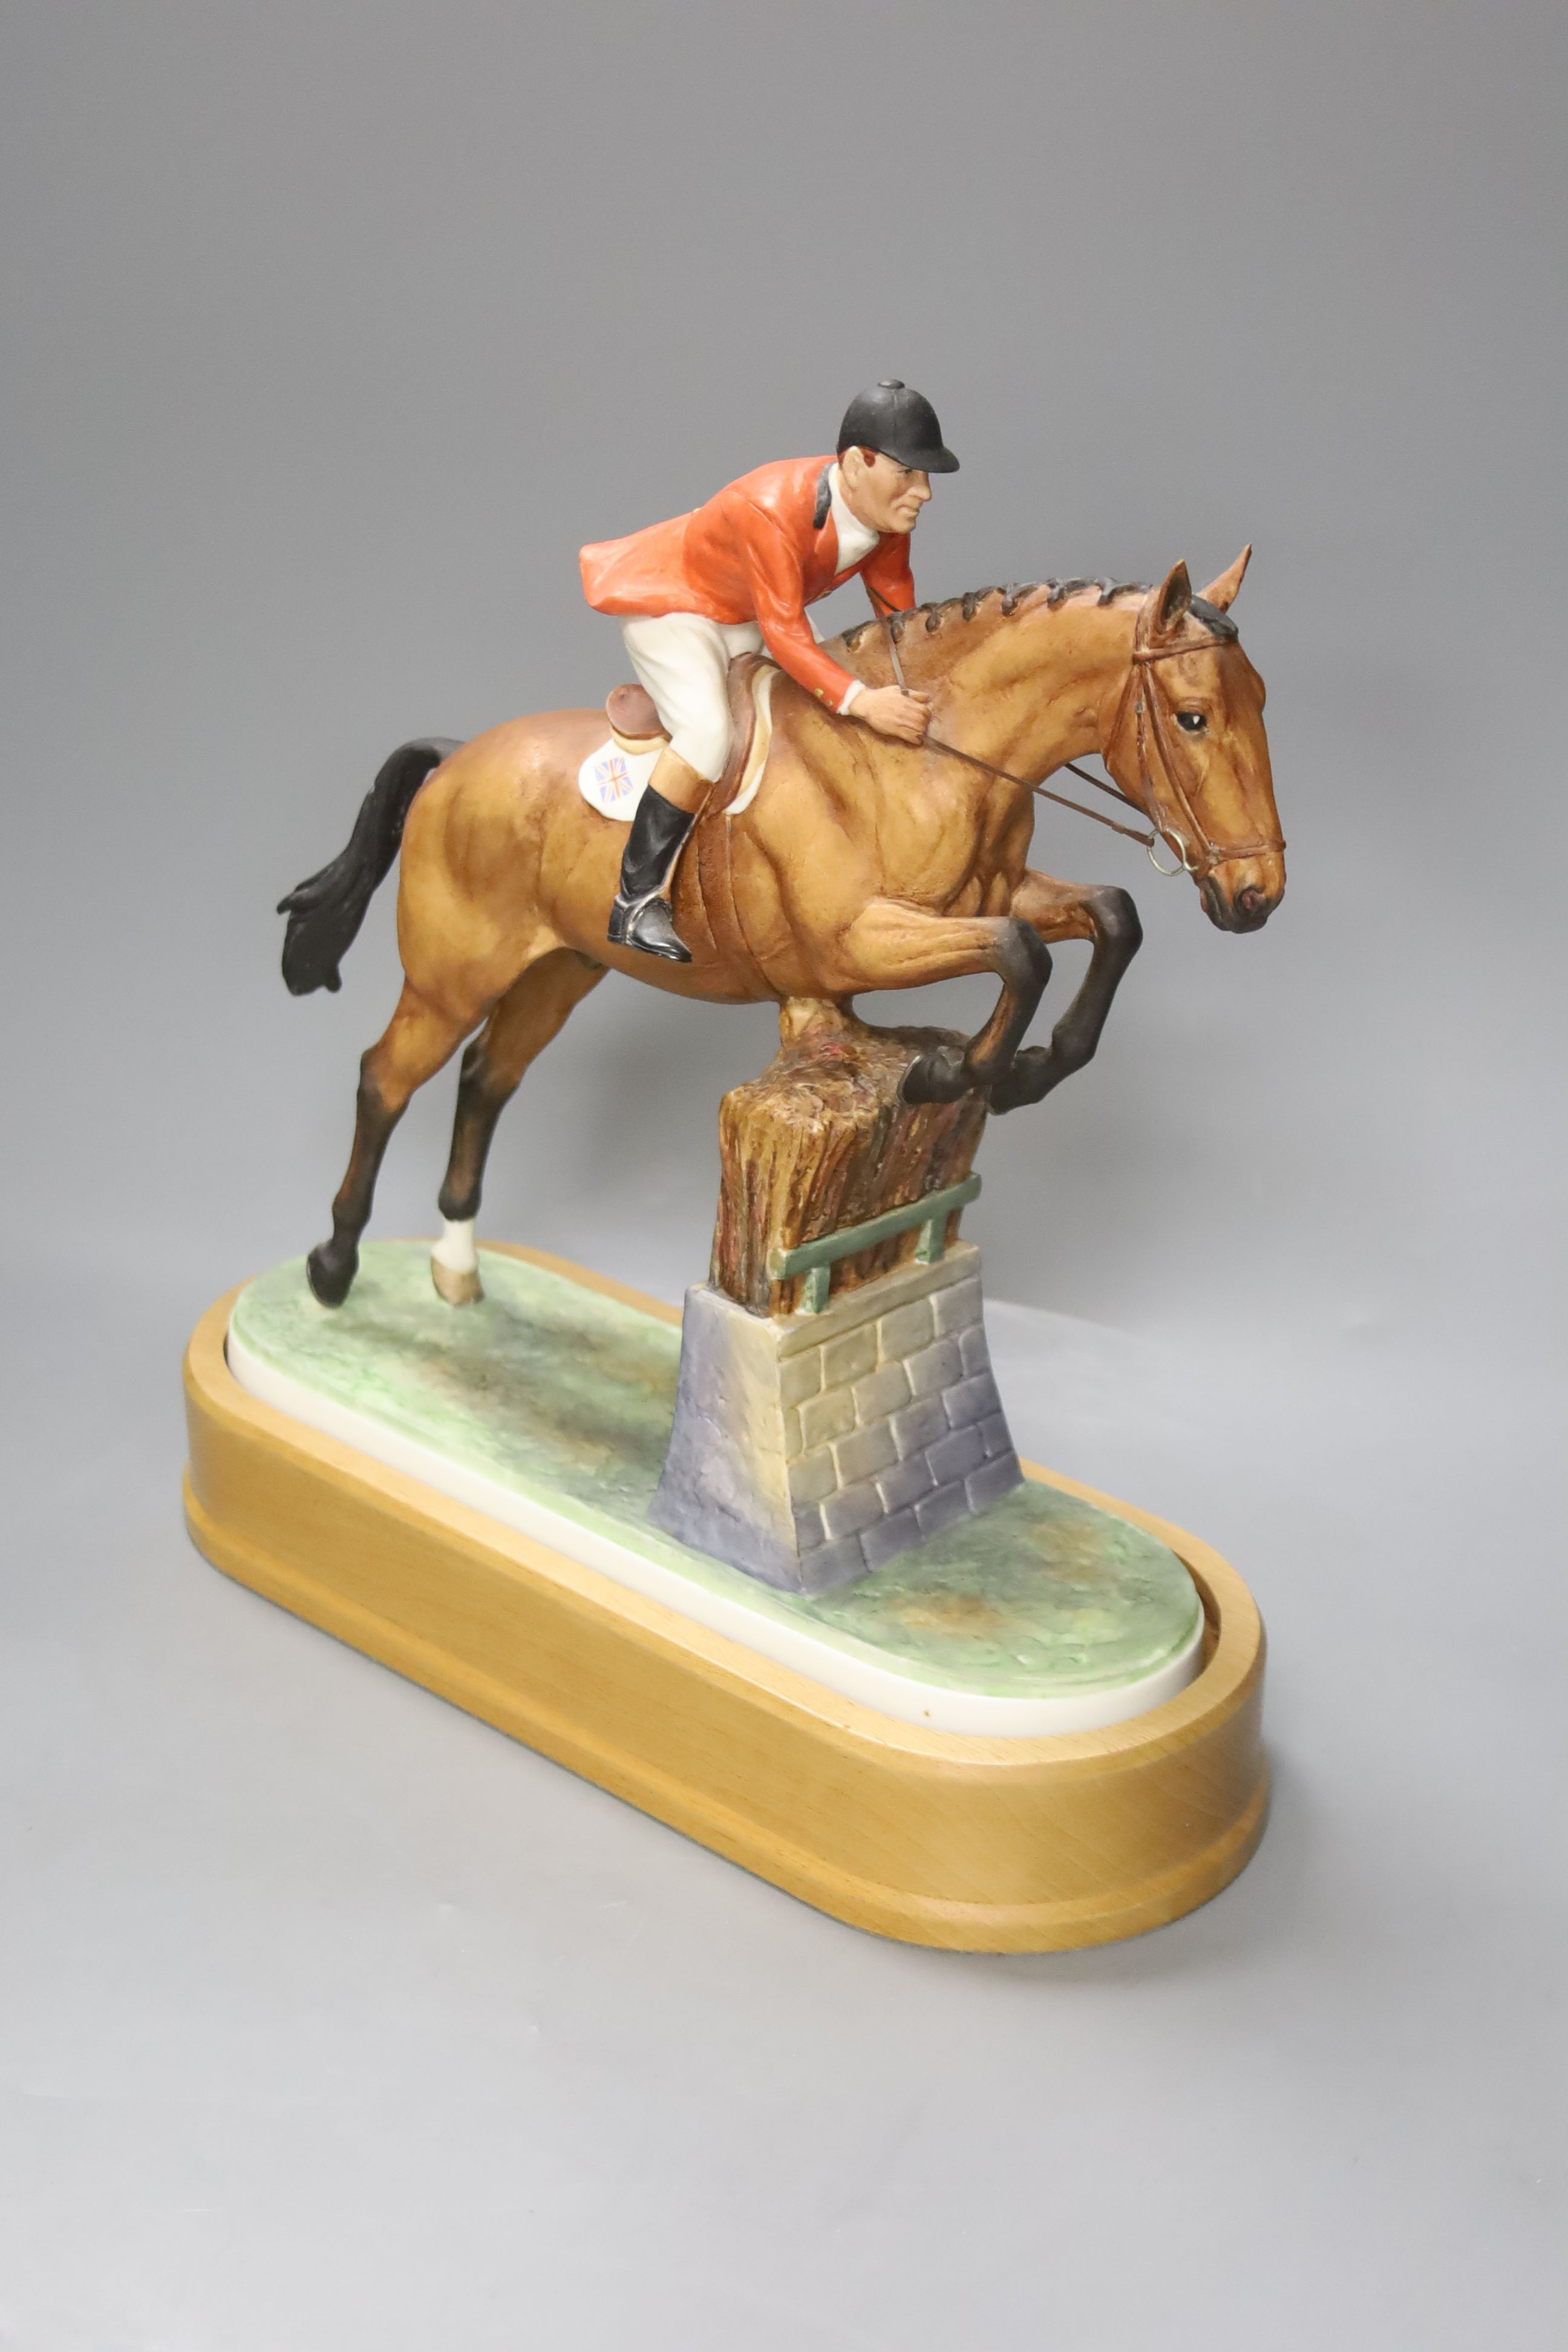 Doris Lindner for Royal Worcester, a limited edition figure, 'Foxhunter and Lt. Col. H M Llewellyn - Image 2 of 4